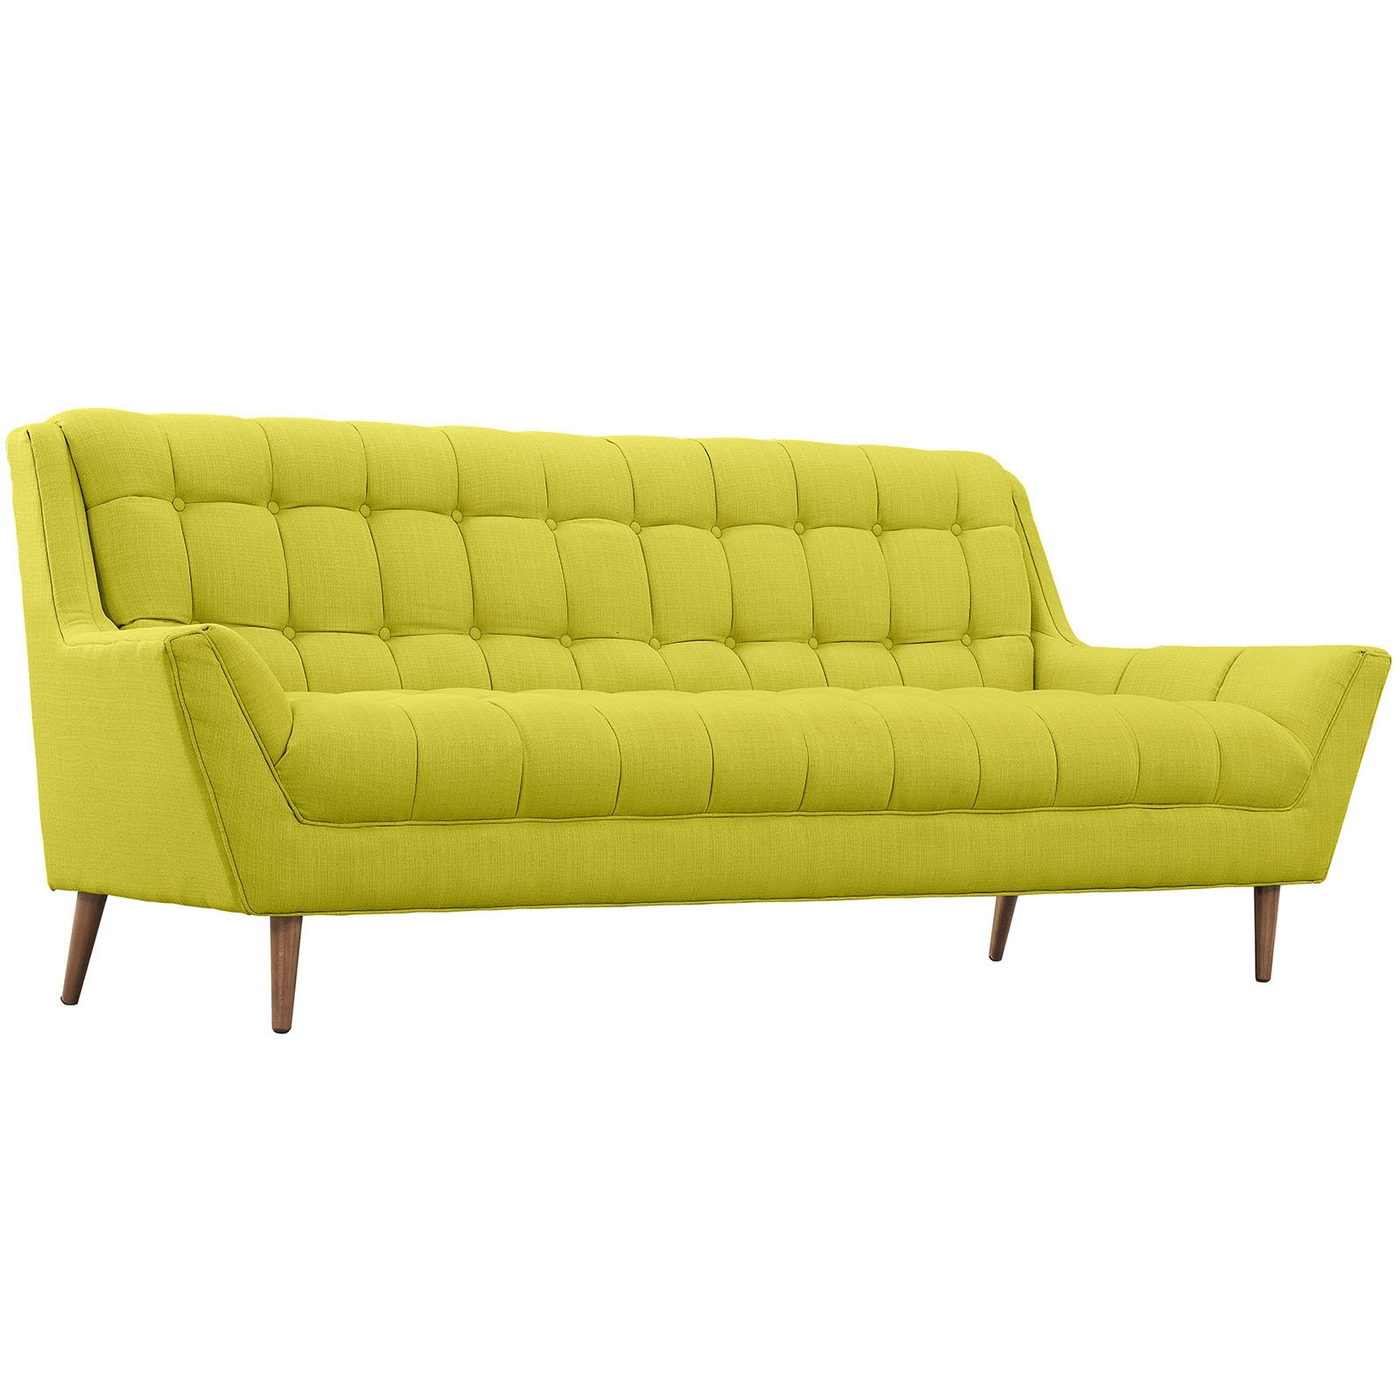 Mid-Century Modern Response Contemporary Button-Tufted Sofa - Wheat Grass  Green